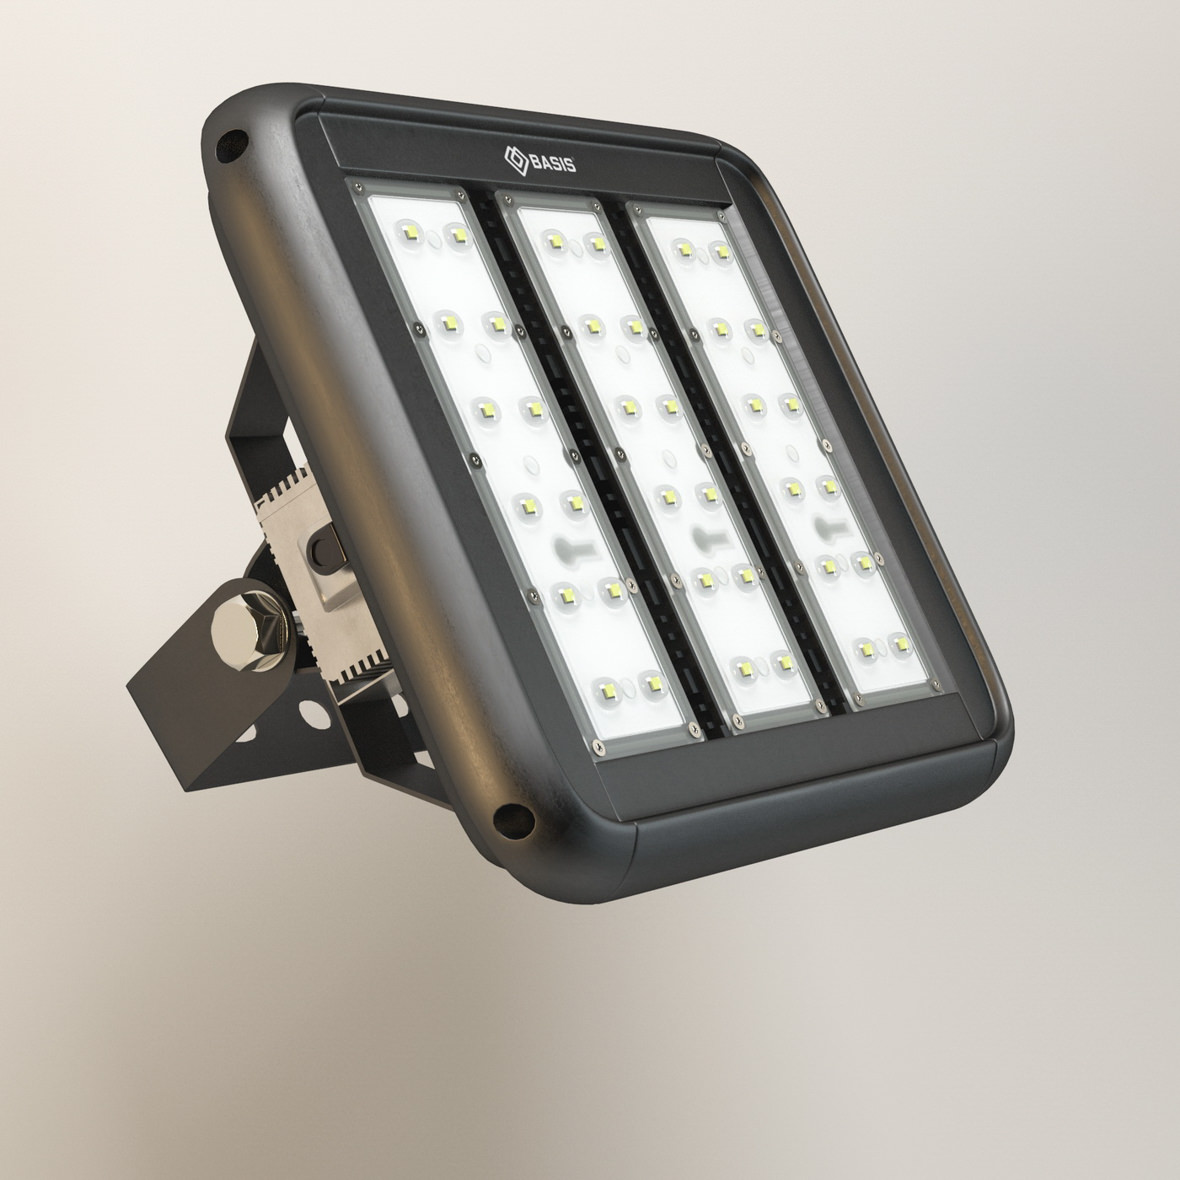 3D front view of industrial LED fixture in black case